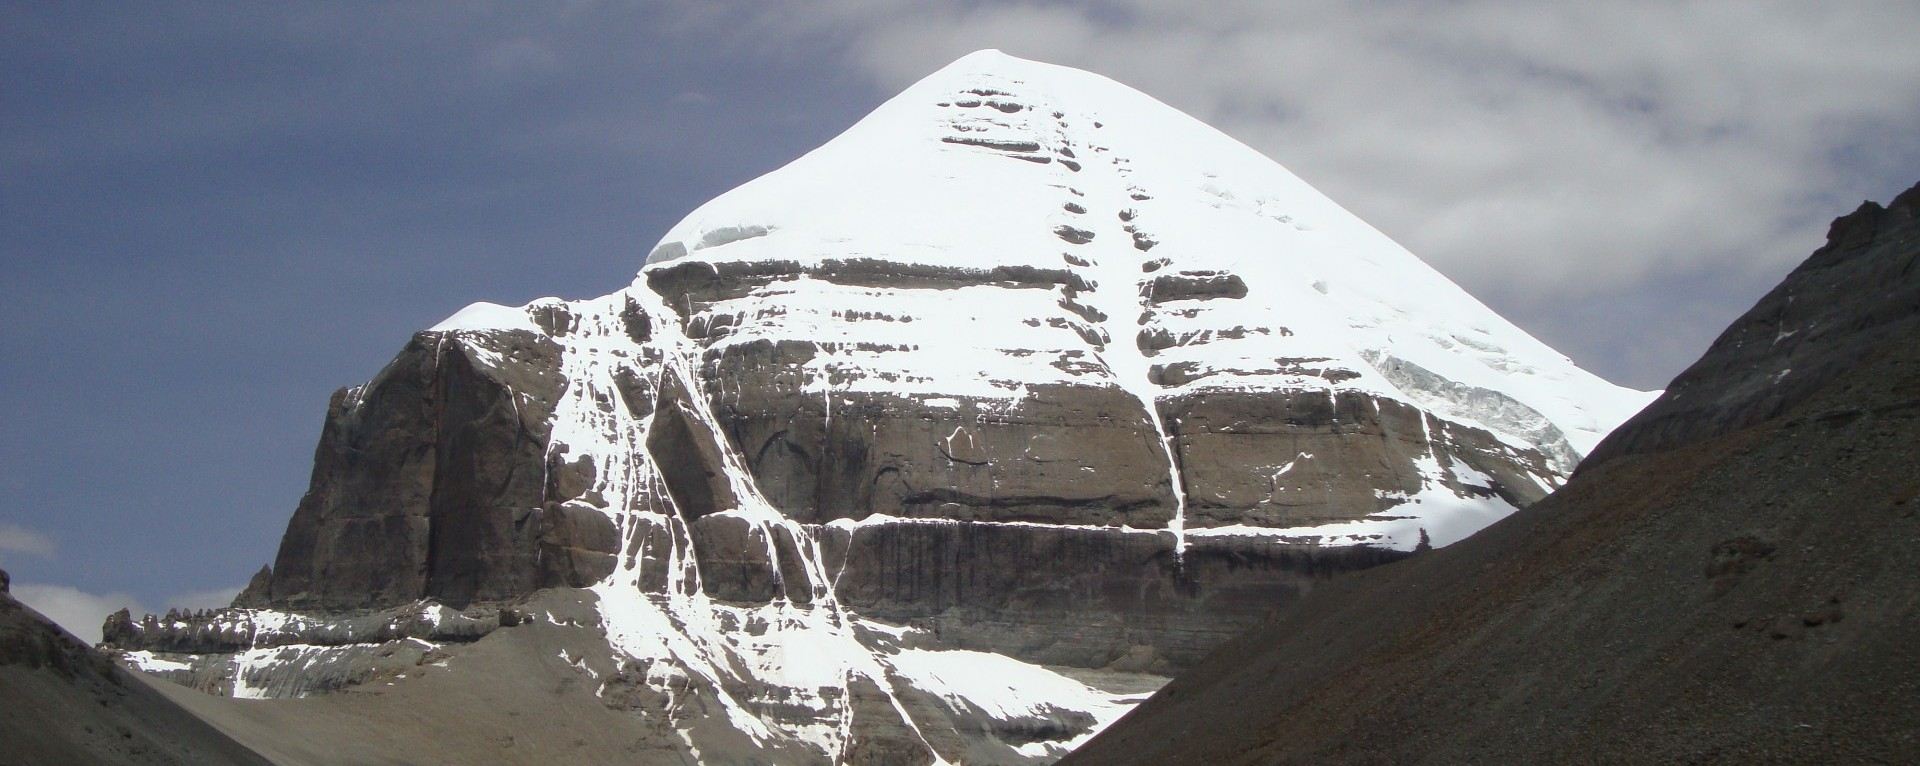 Mt. Kailash from the south side.